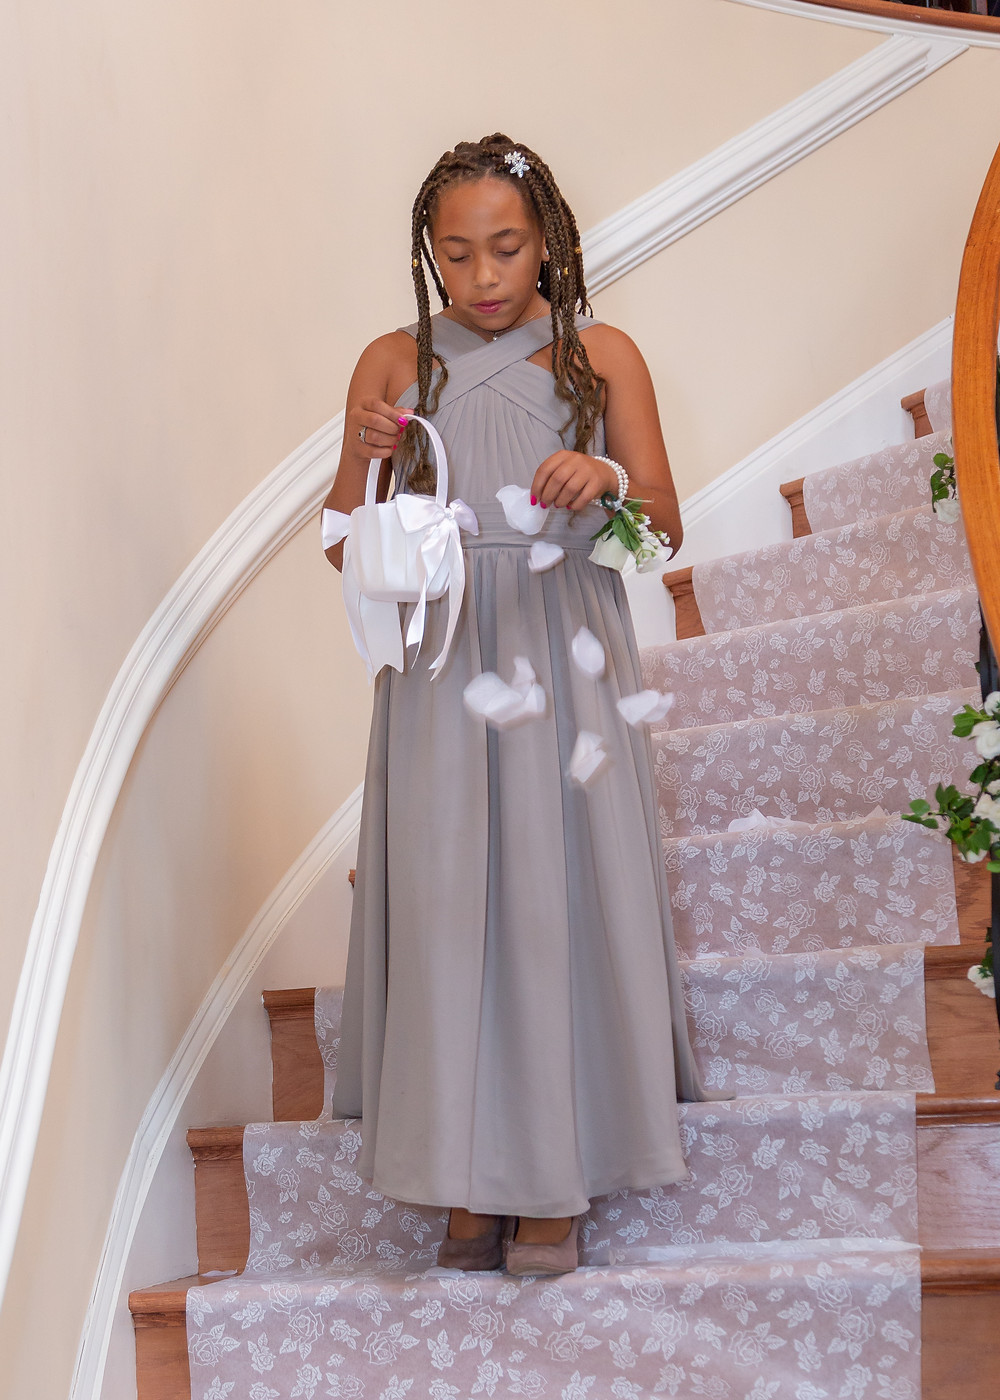 The flower girl preparing the isle runner before the bride enters the wedding ceremony in Fairfax, Virginia.